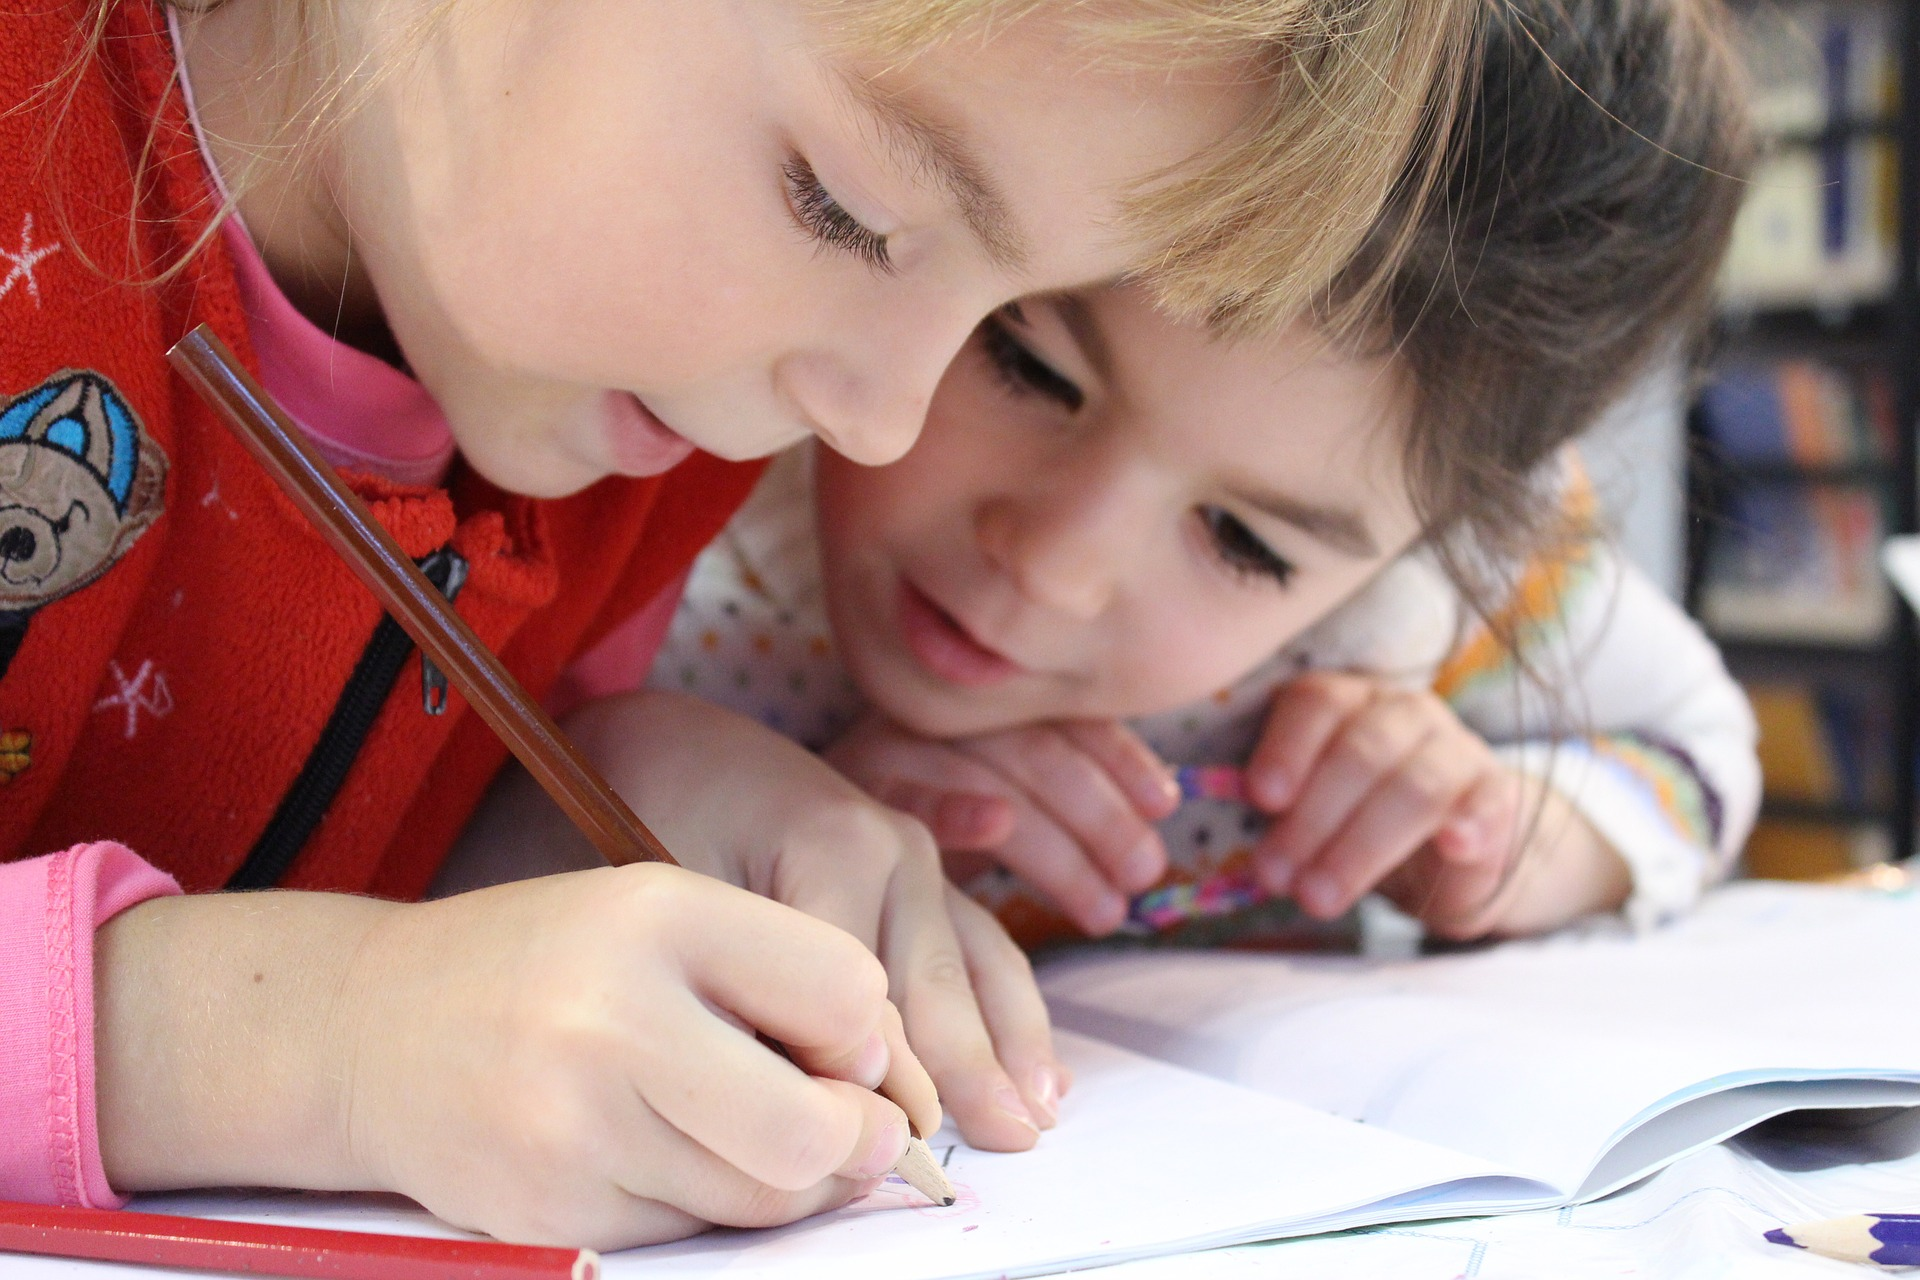 children learn better at small age